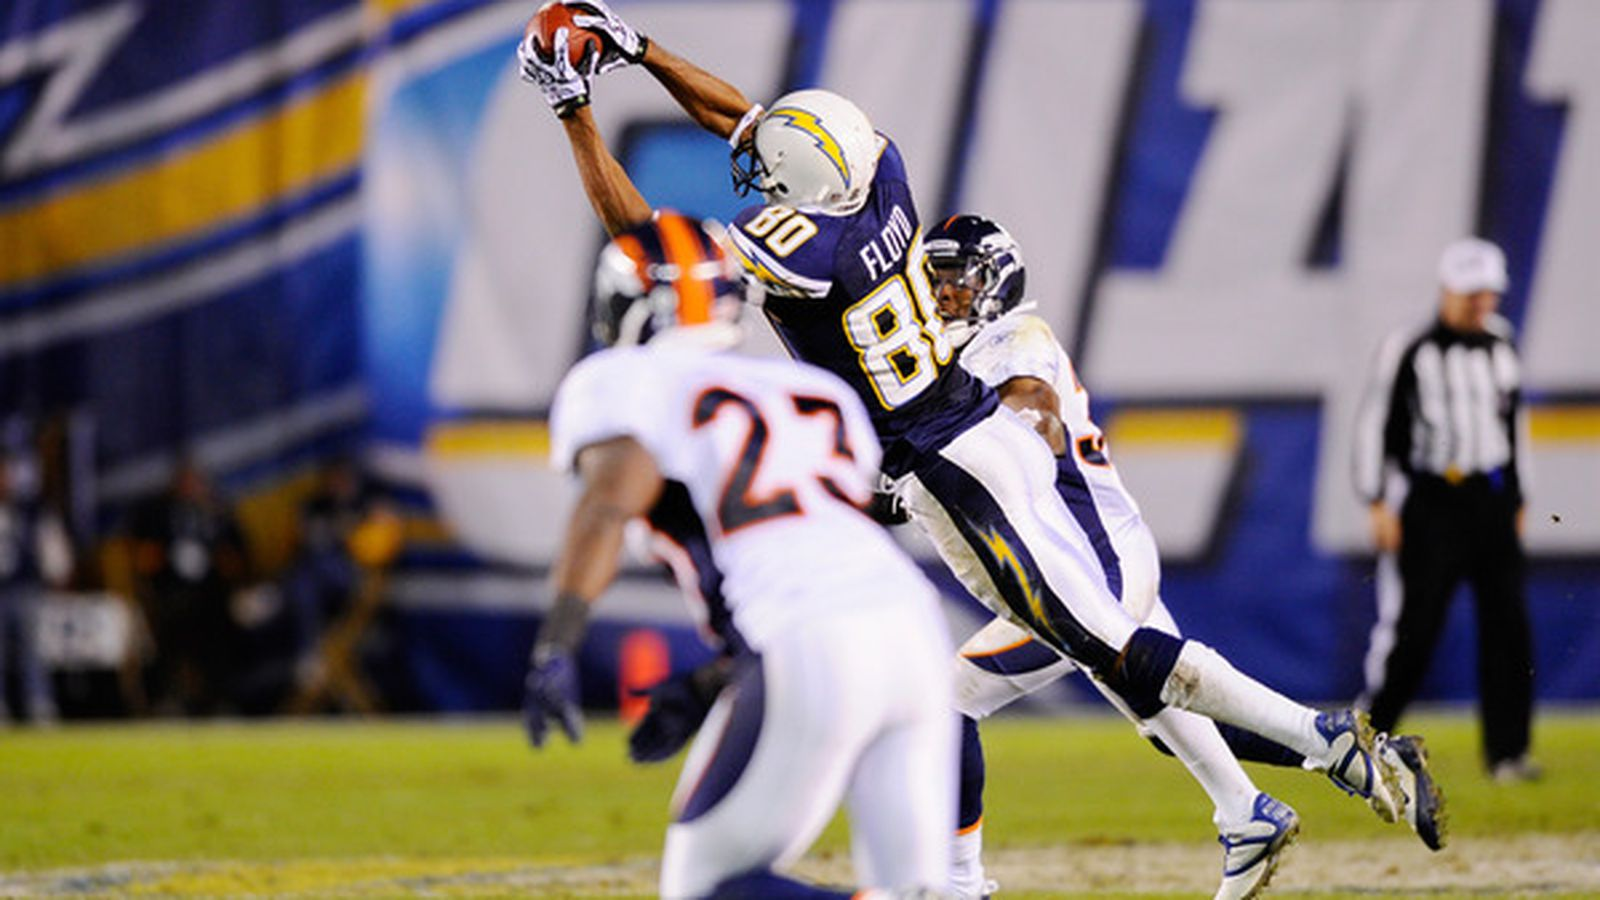 Malcom Floyd Returns To San Diego Chargers On Two Year